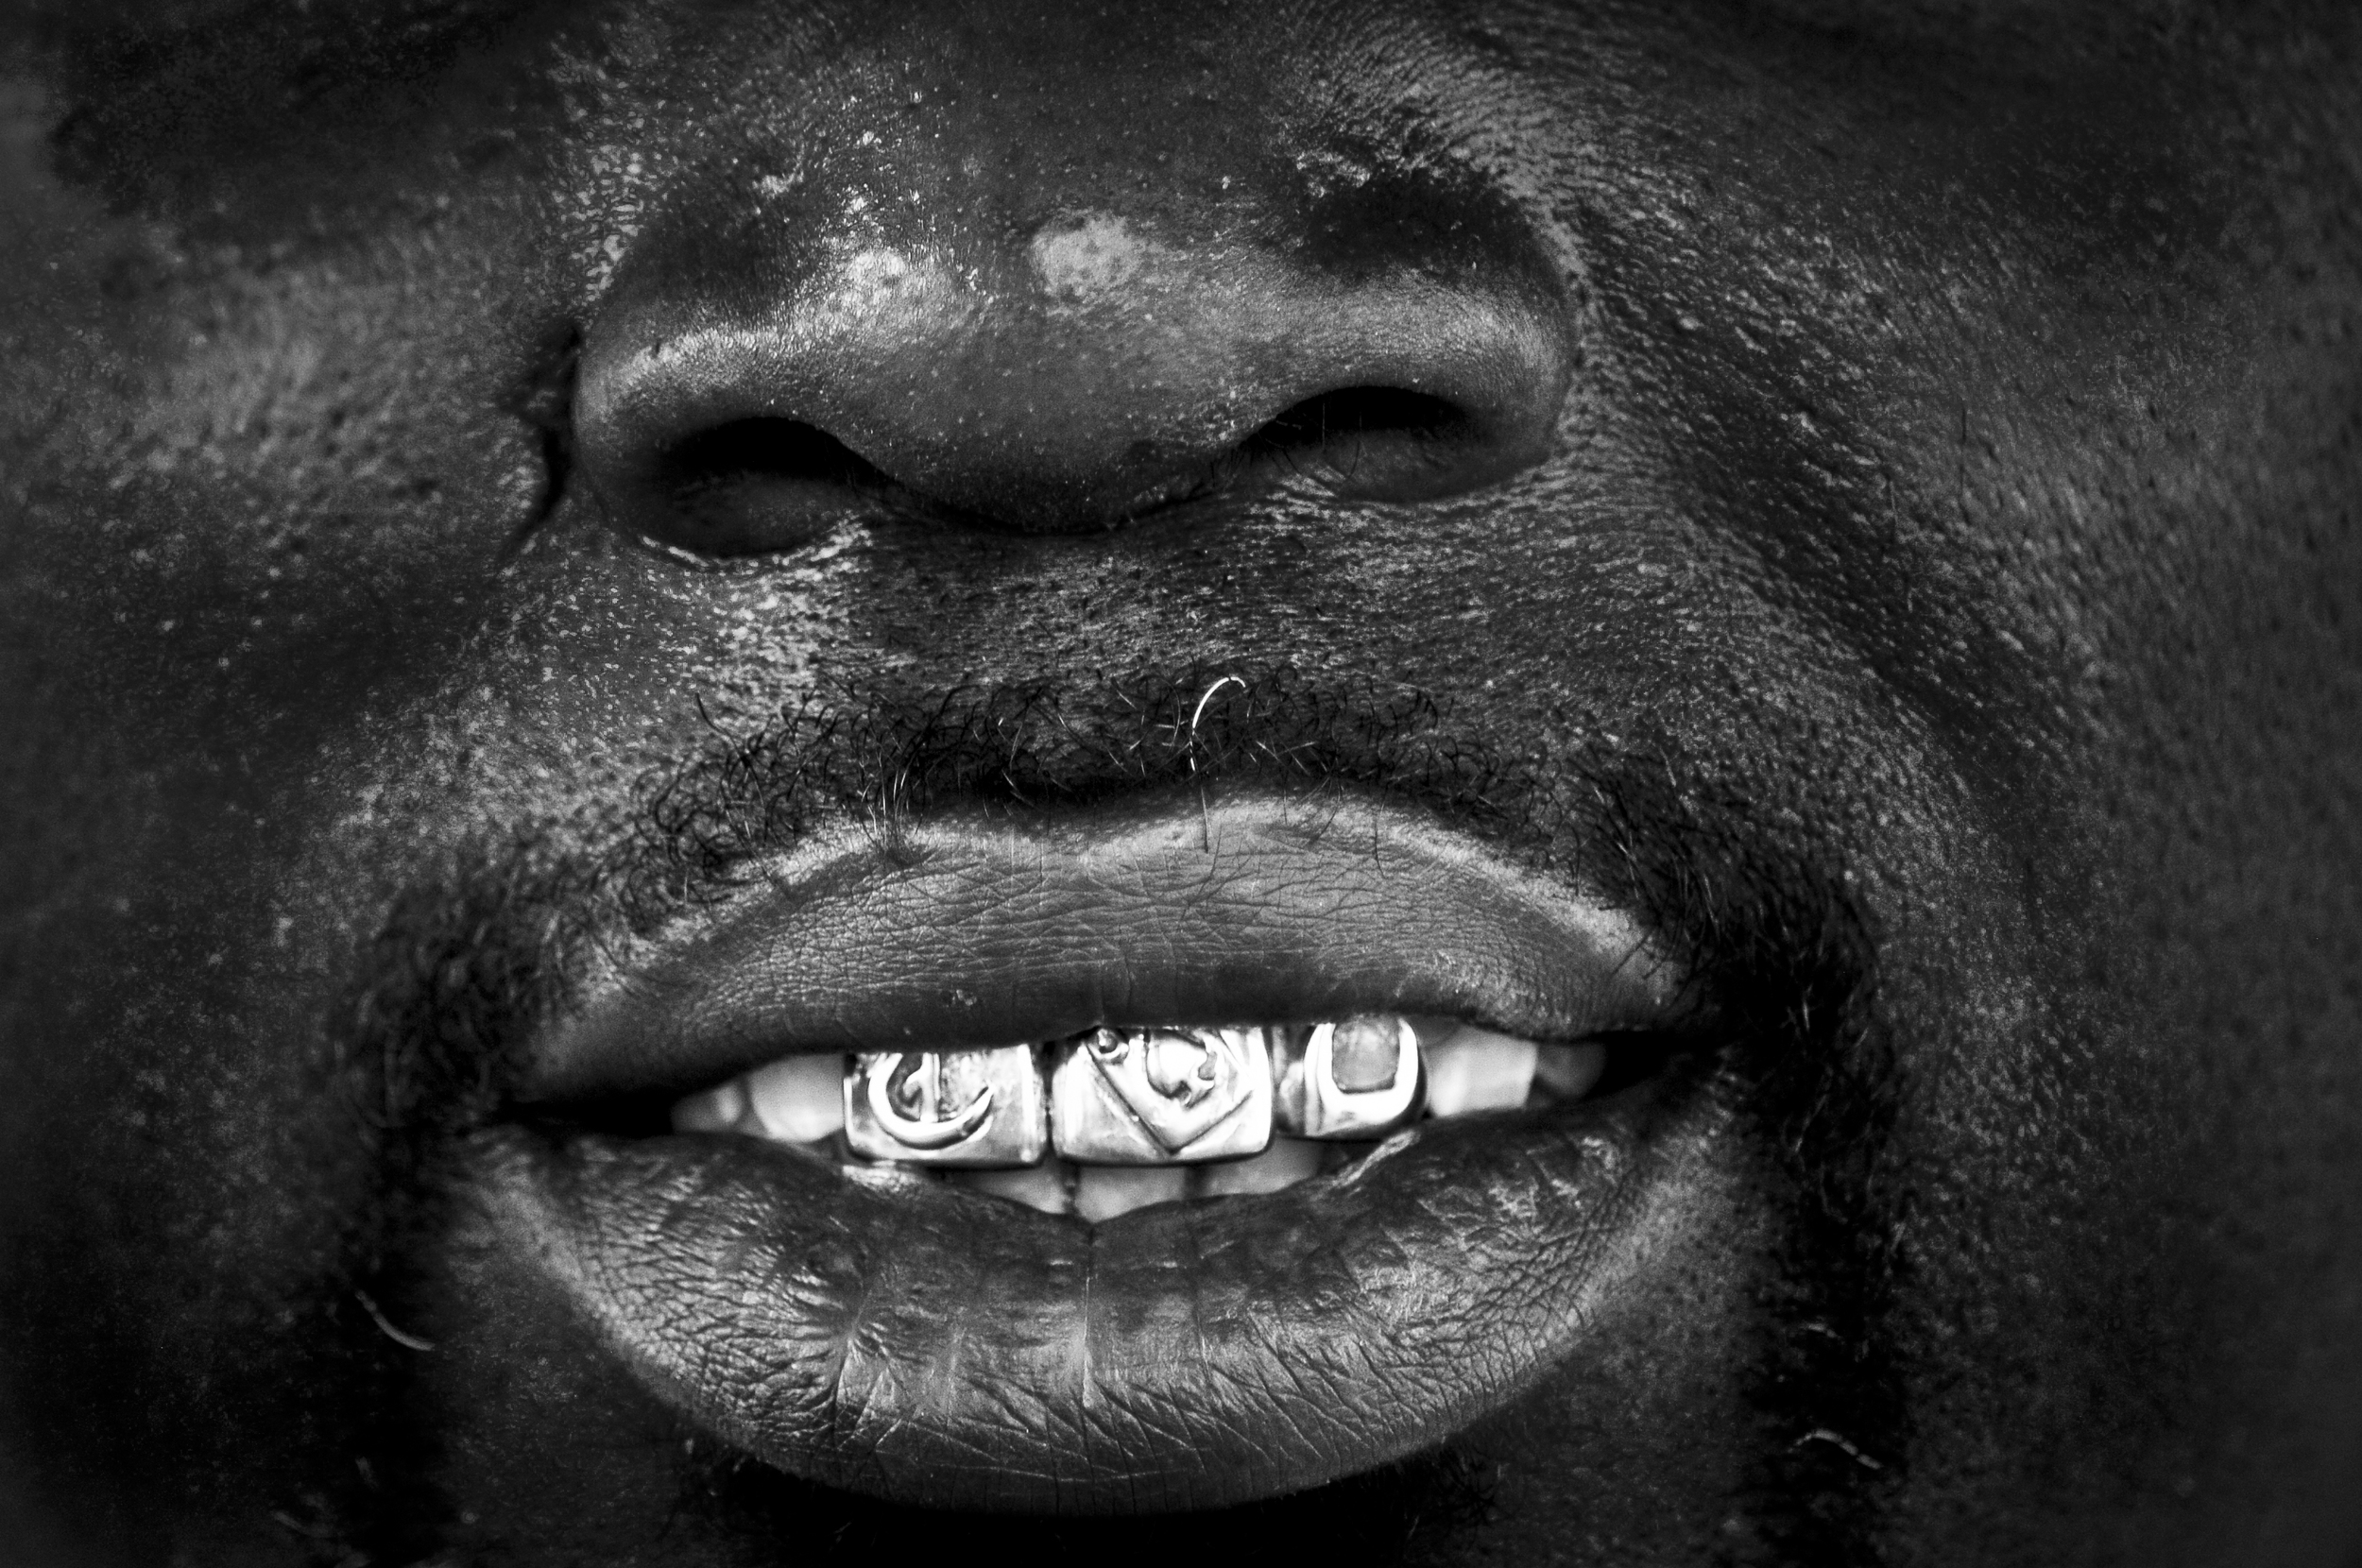 Tyrone Jackson shows off his gold teeth outside of his business North Side Audio in North Tulsa. Many of the small businesses in North Tulsa struggle to stay open due to the violence and poverty that plagues the area. Nick Oxford for The New York Times